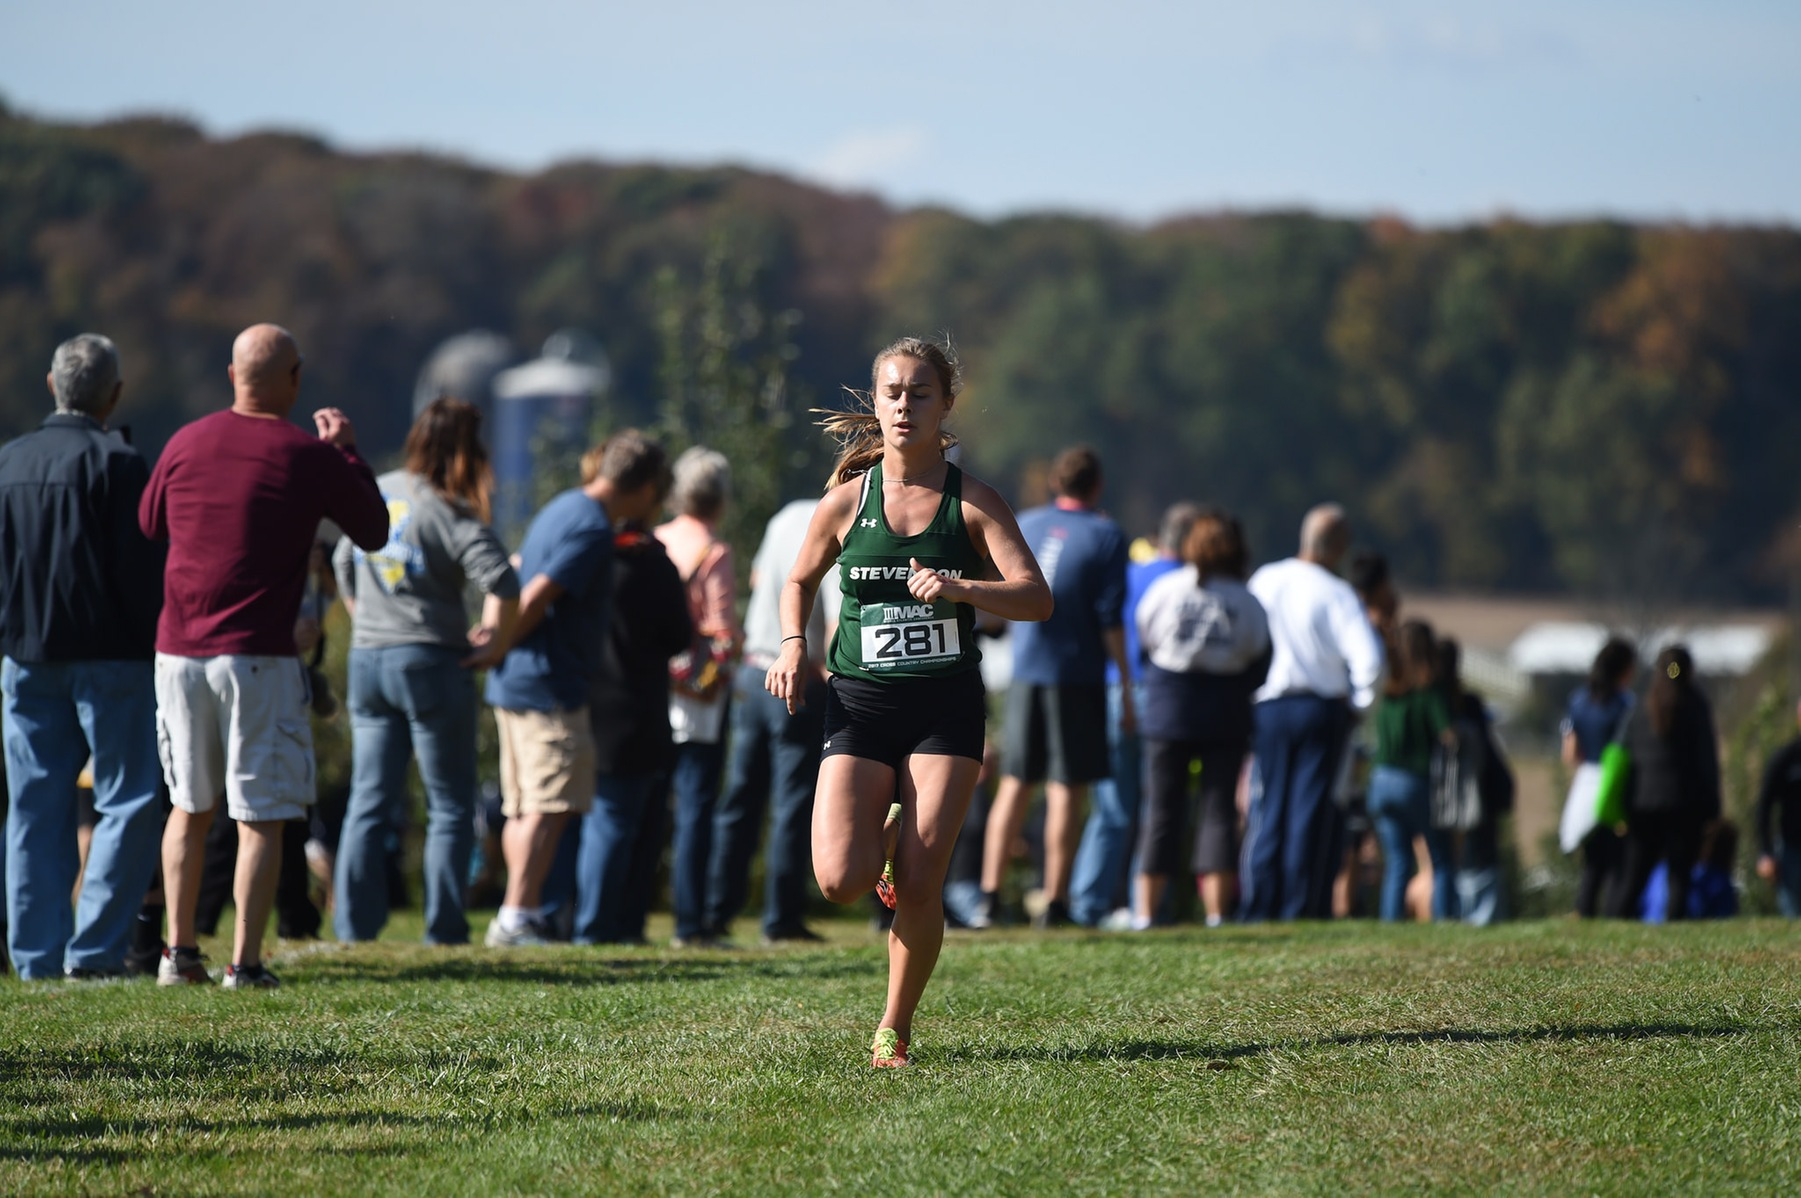 Winklbauer Sets Program Record, Places 32nd at NCAA Mideast Regionals